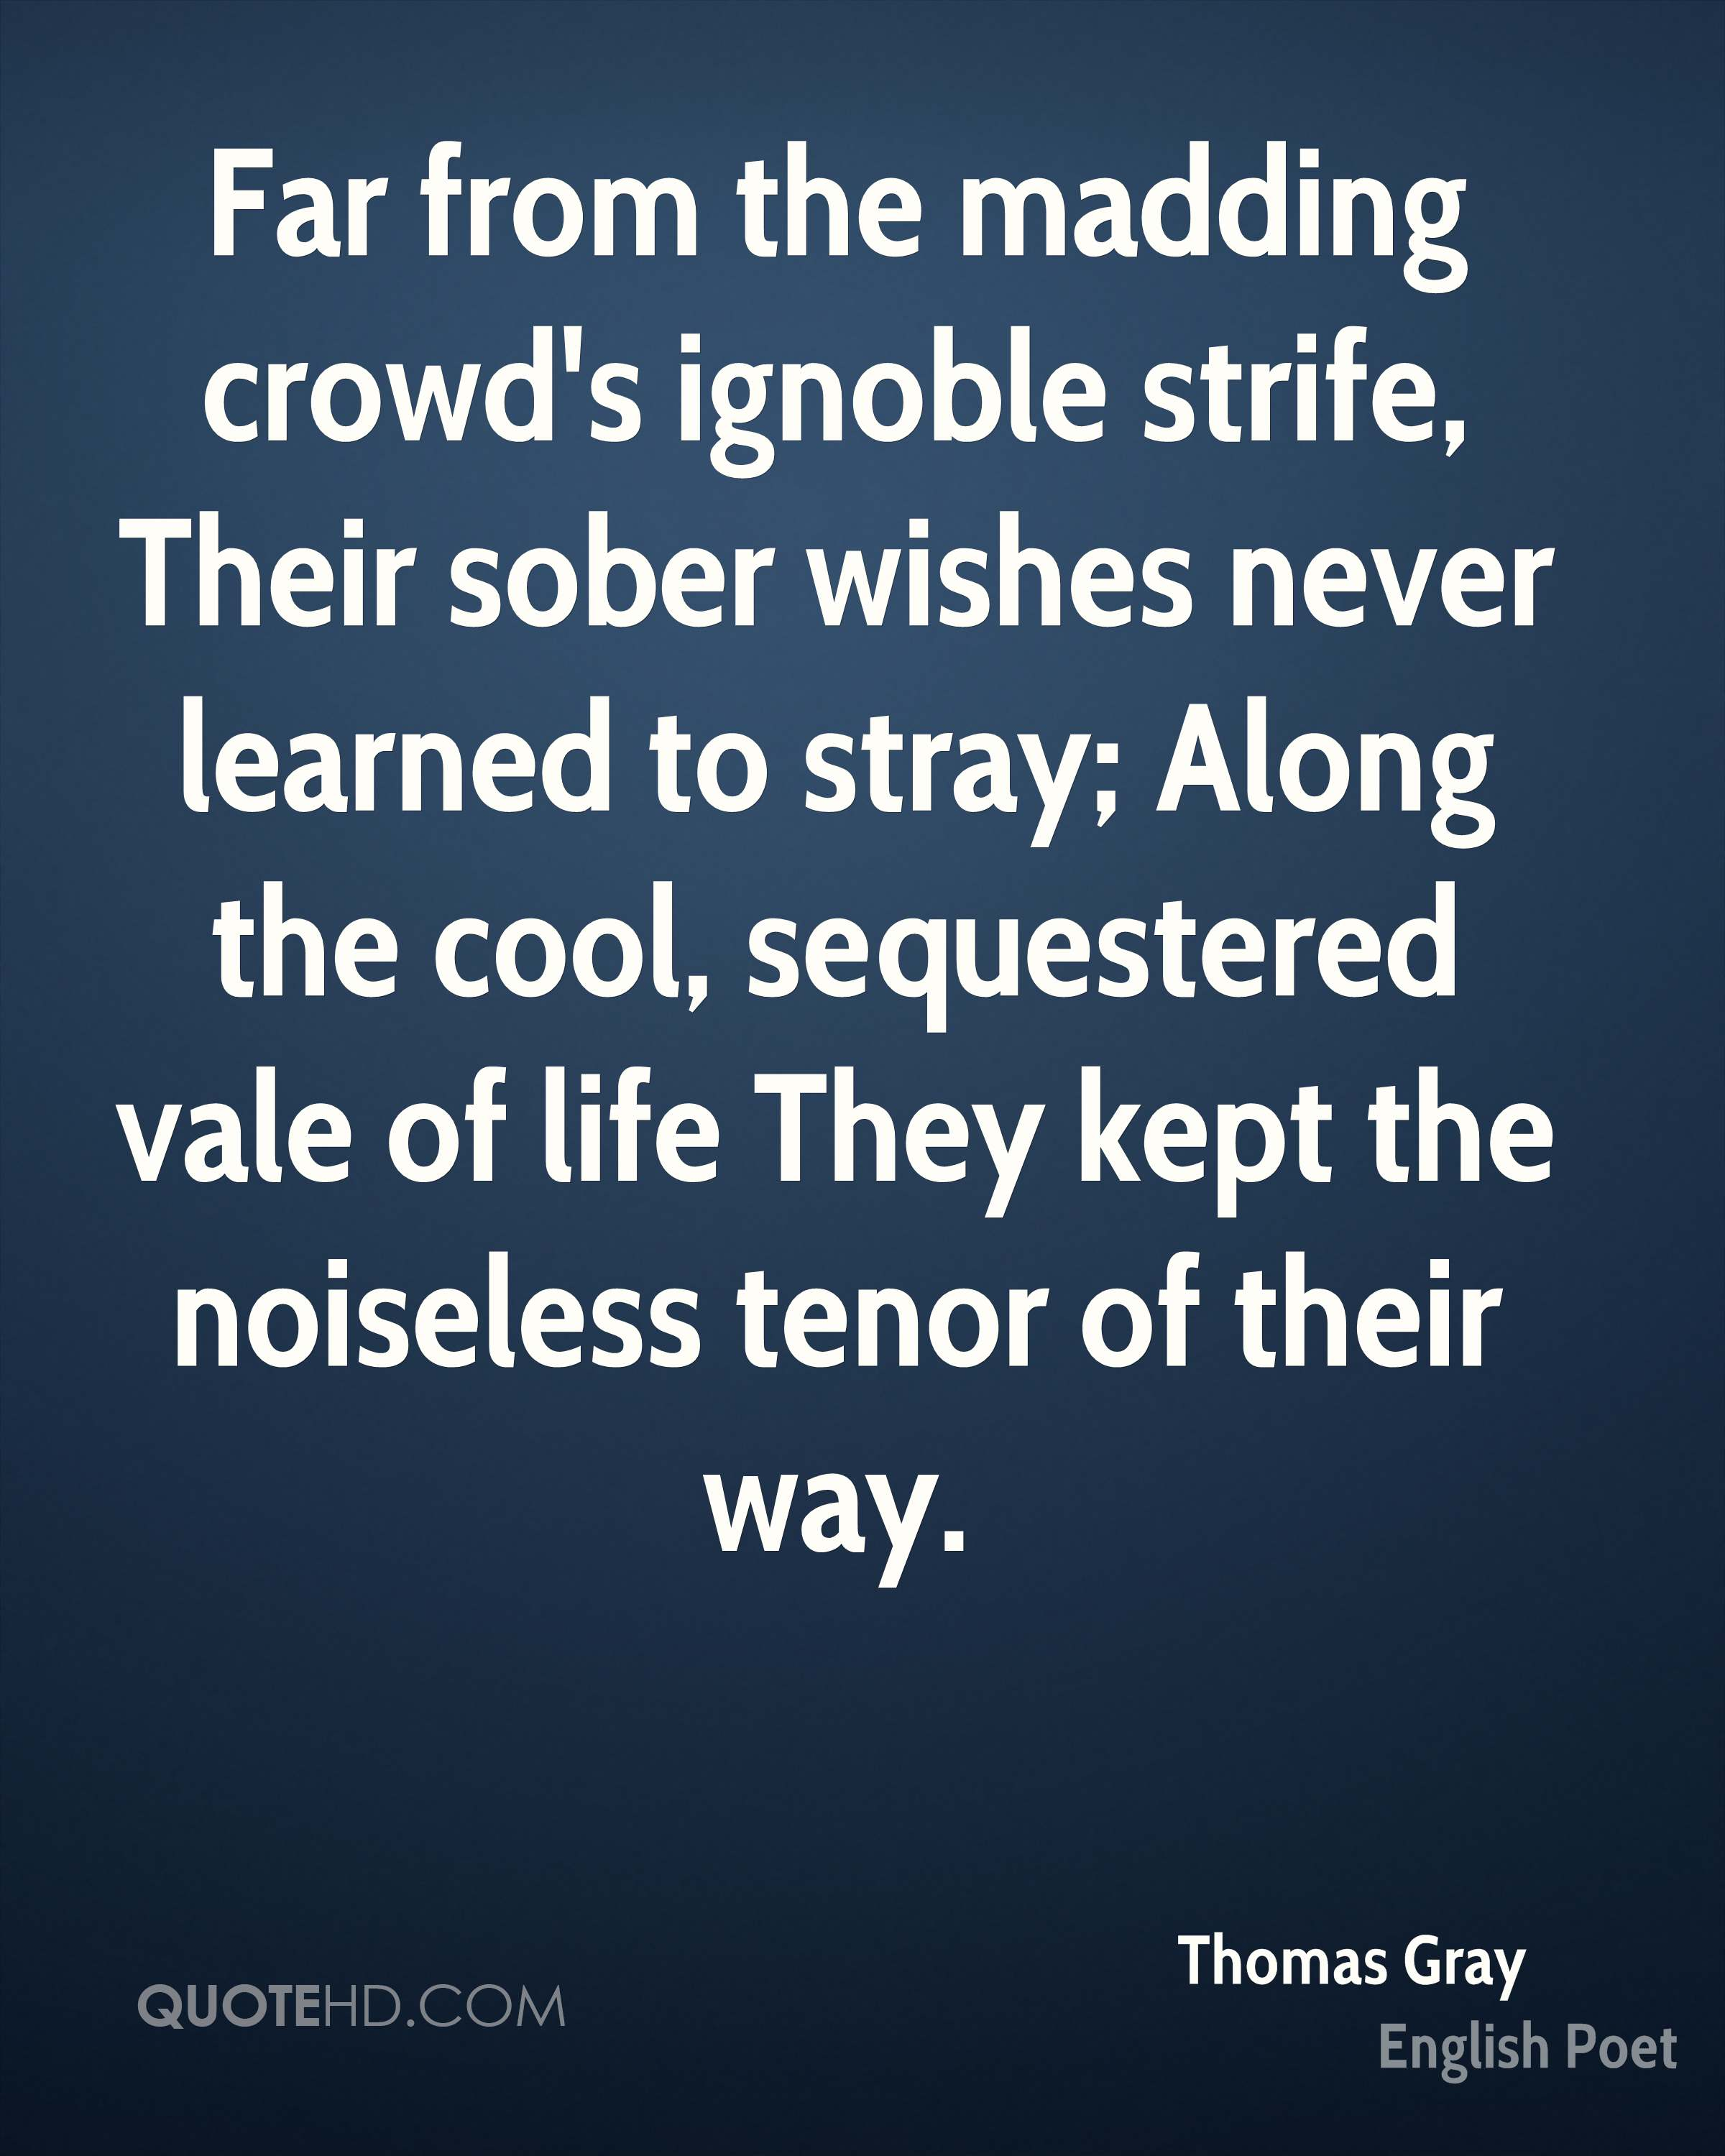 Far from the madding crowd's ignoble strife, Their sober wishes never learned to stray; Along the cool, sequestered vale of life They kept the noiseless tenor of their way.